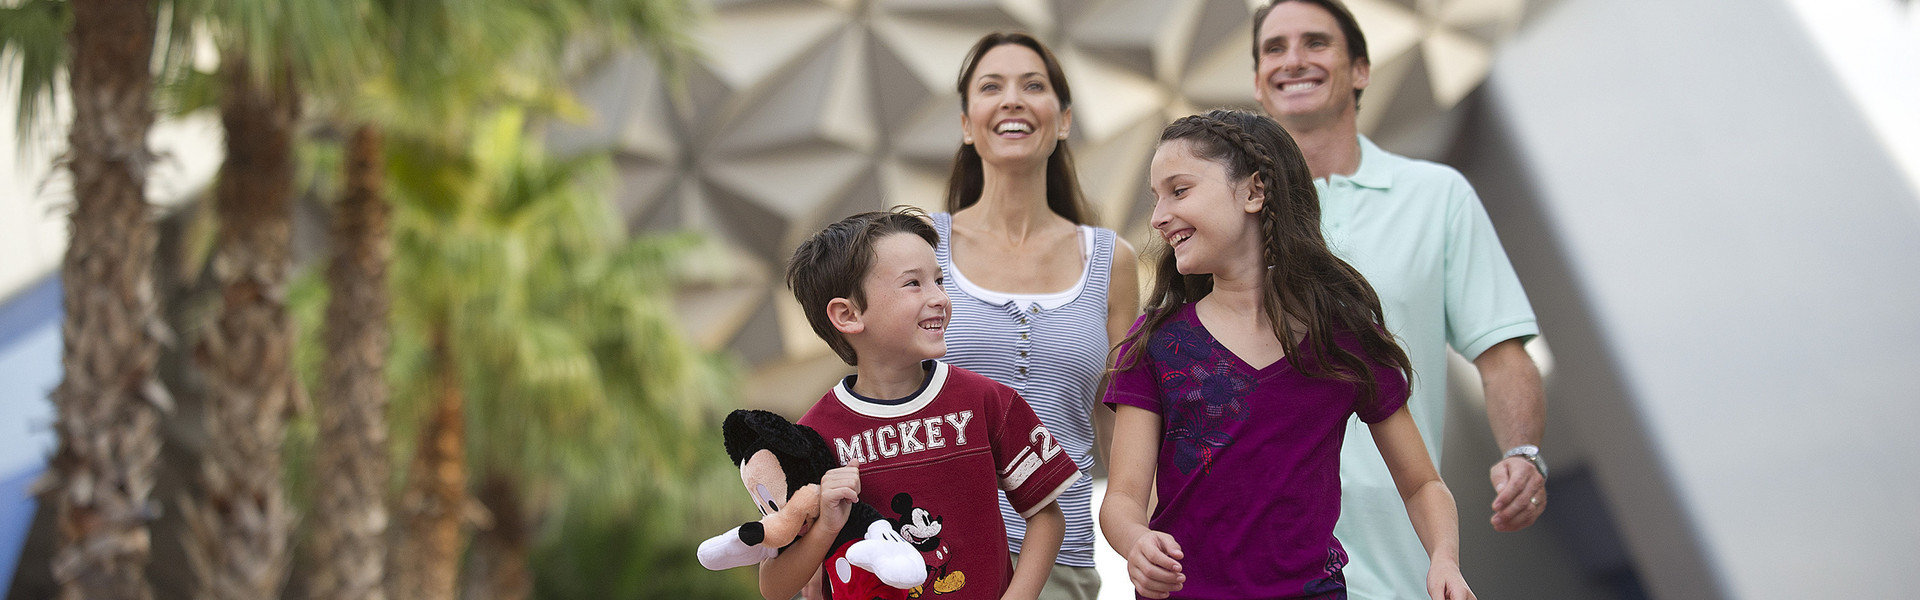 Family enjoying Disney World Orlando with their park tickets discount after receiving attraction tickets and Orlando park deals from Tickets To You!